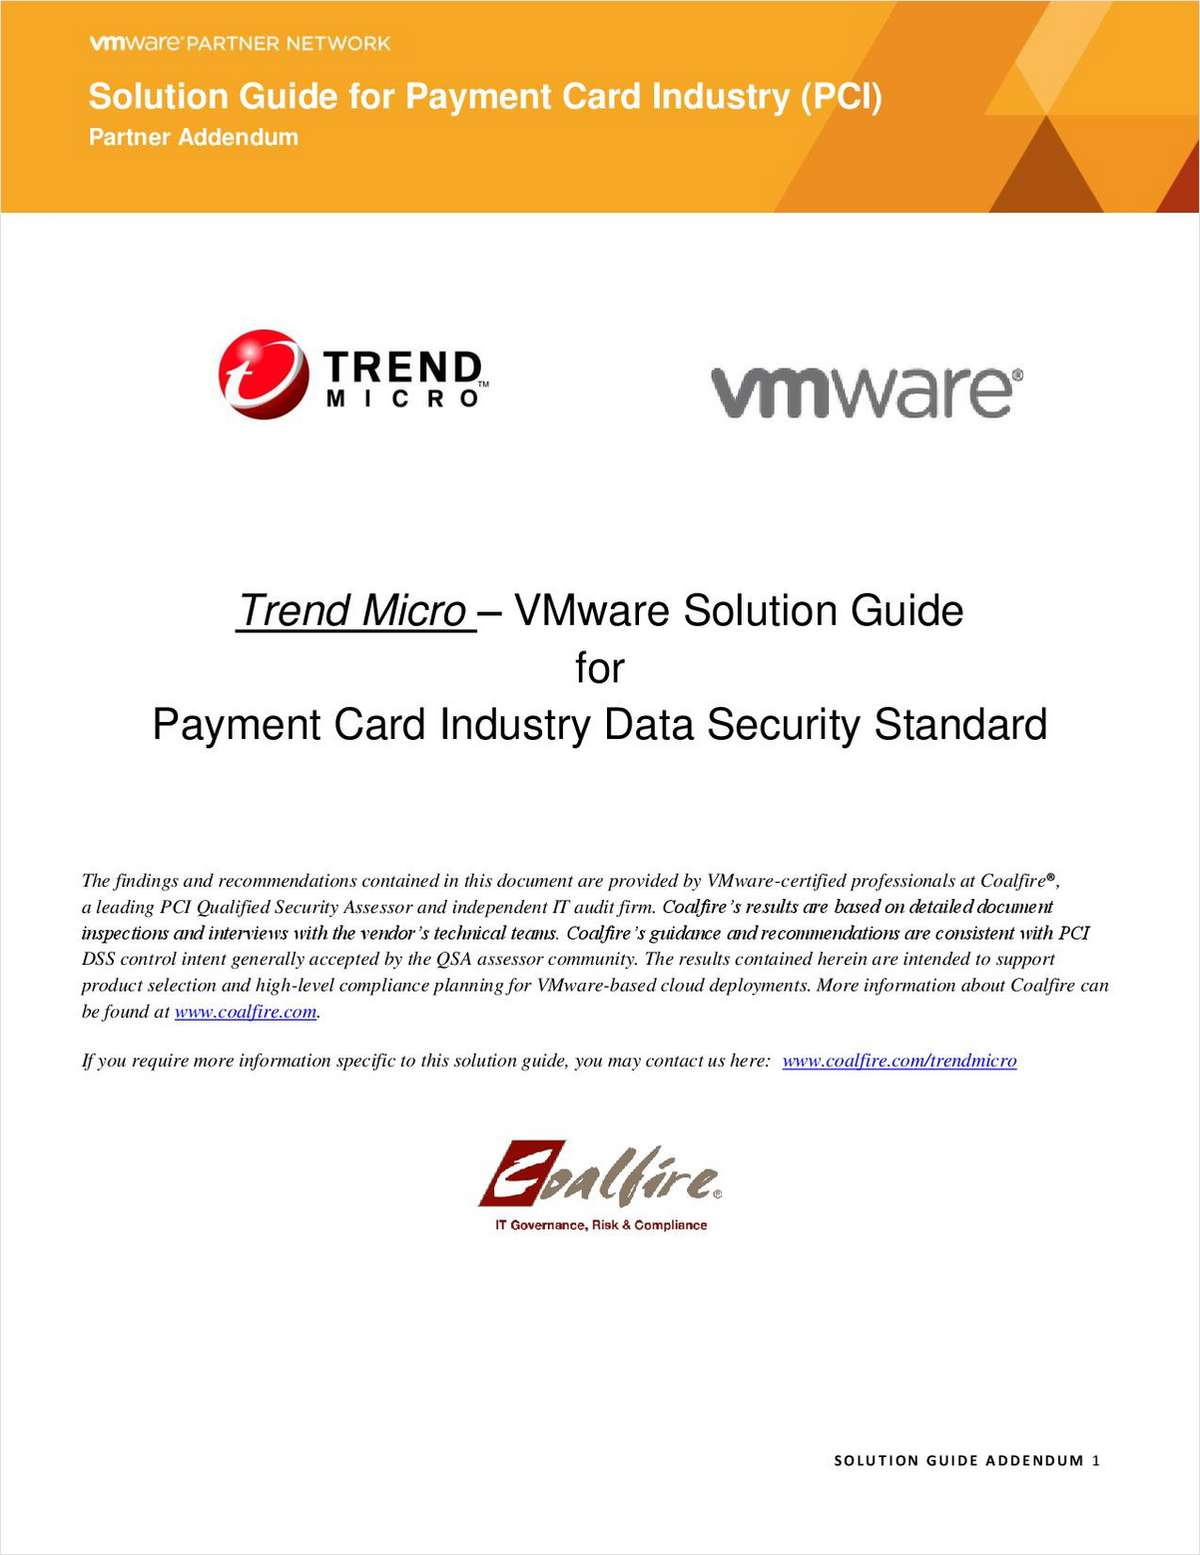 VMware Solution Guide for Payment Card Industry Data Security Standard